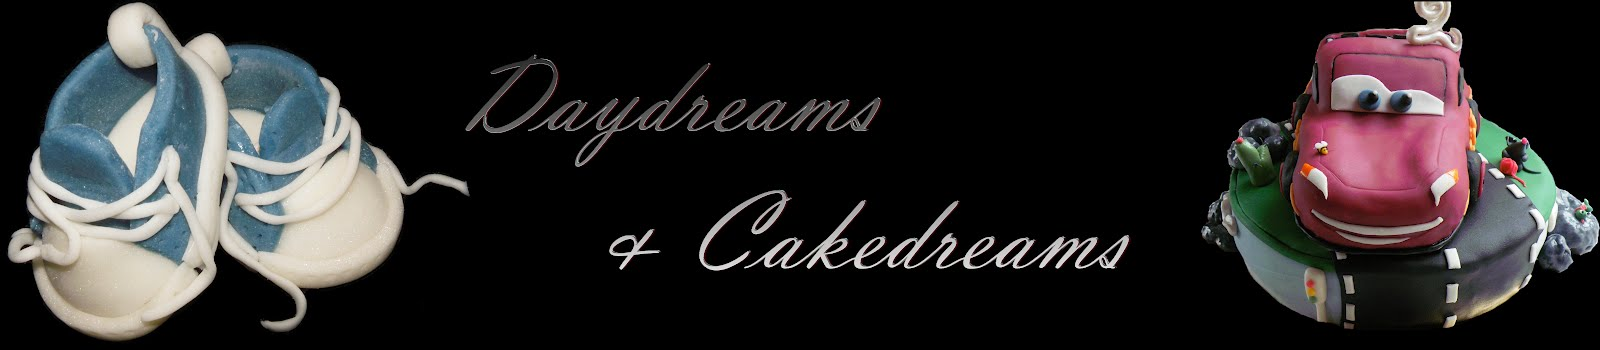 Daydreams & cakedreams